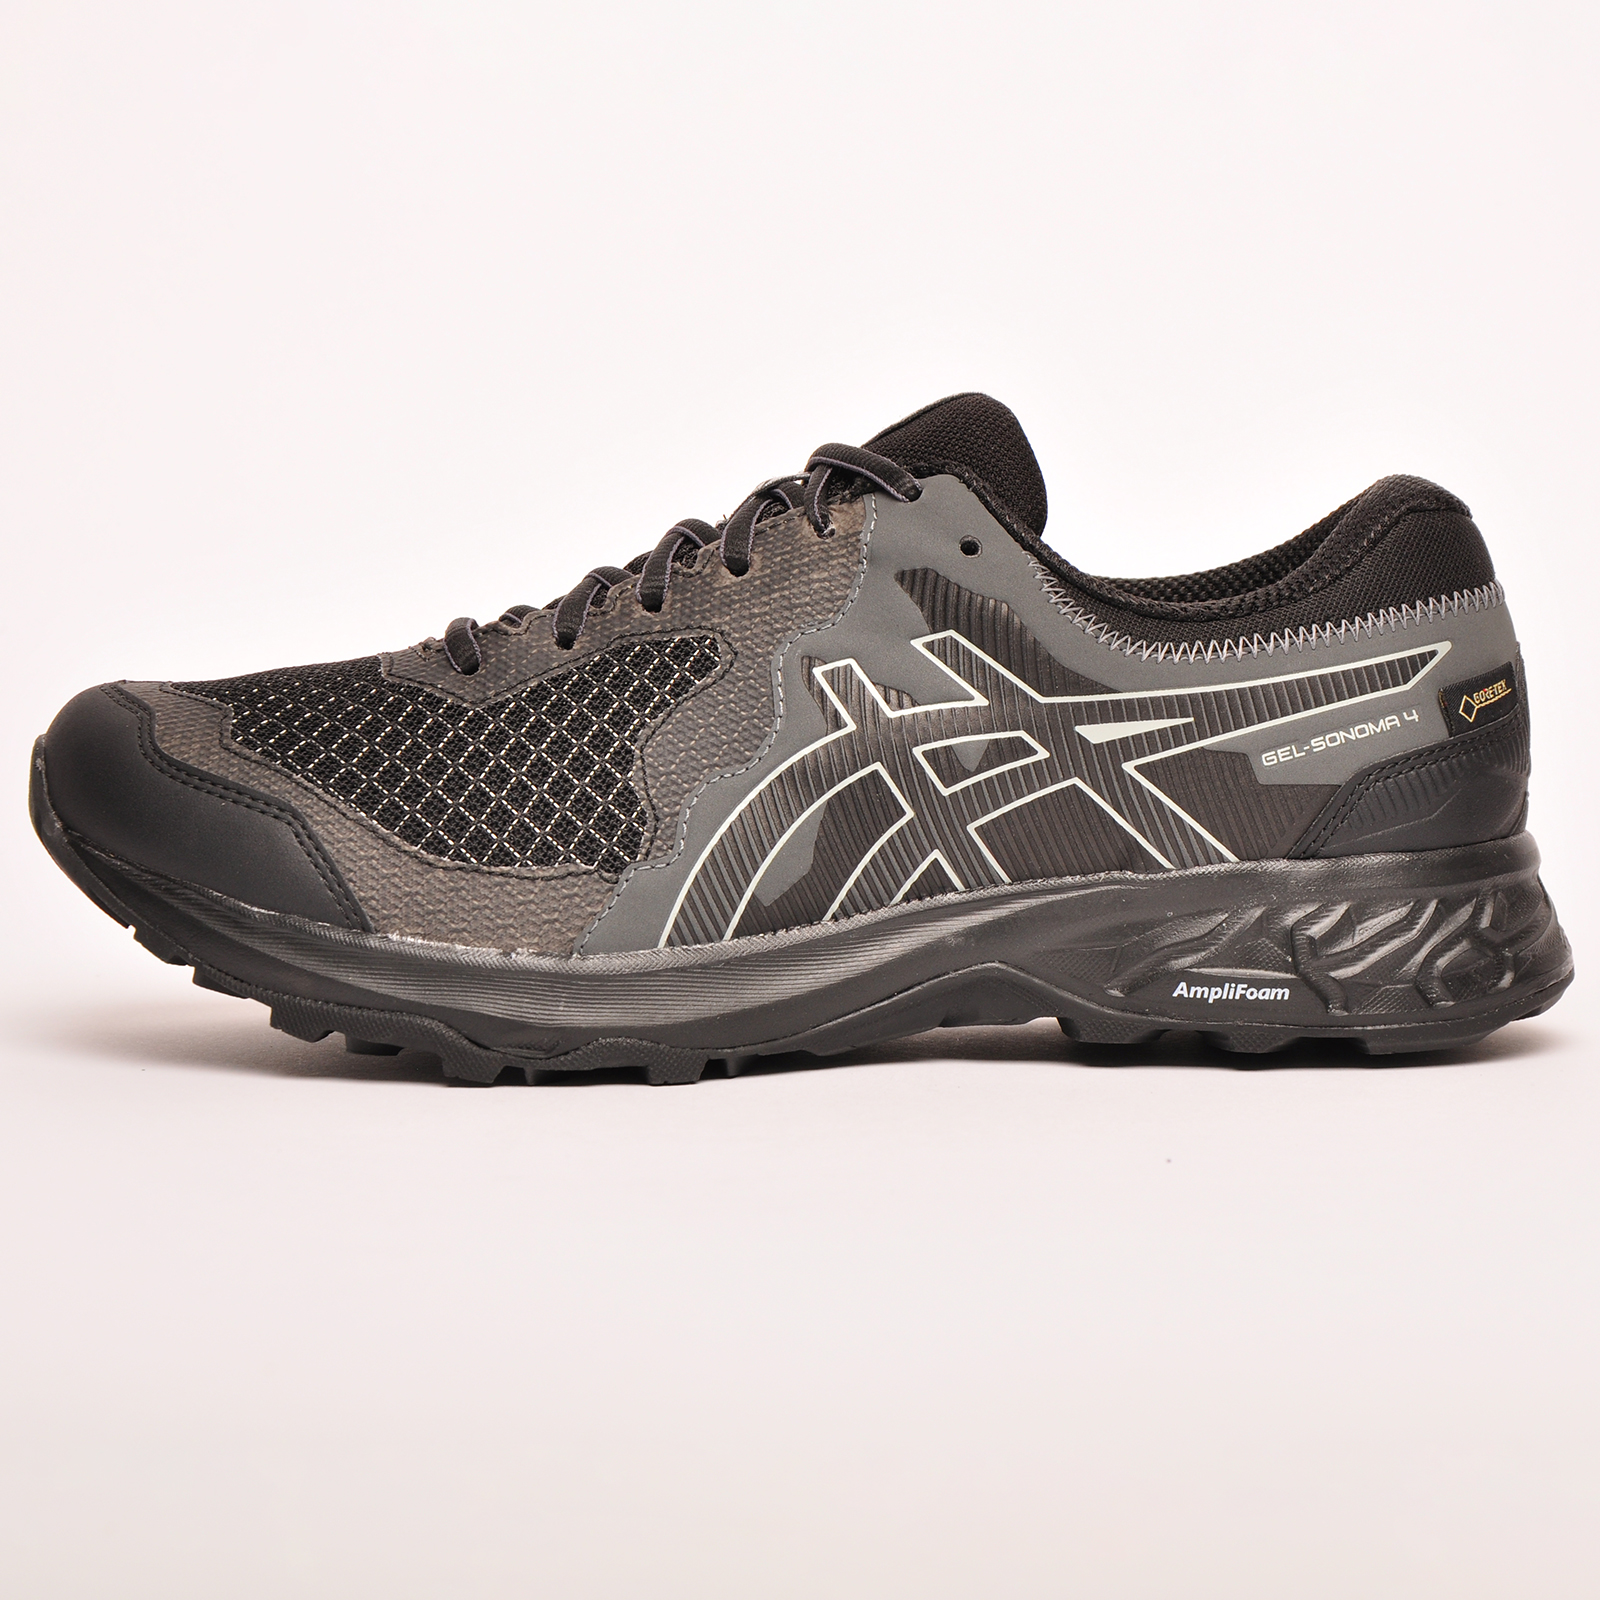 Details zu Asics Gel Sonoma 4 GTX Gore Tex Mens All Terrain Waterproof Trail Running Shoes